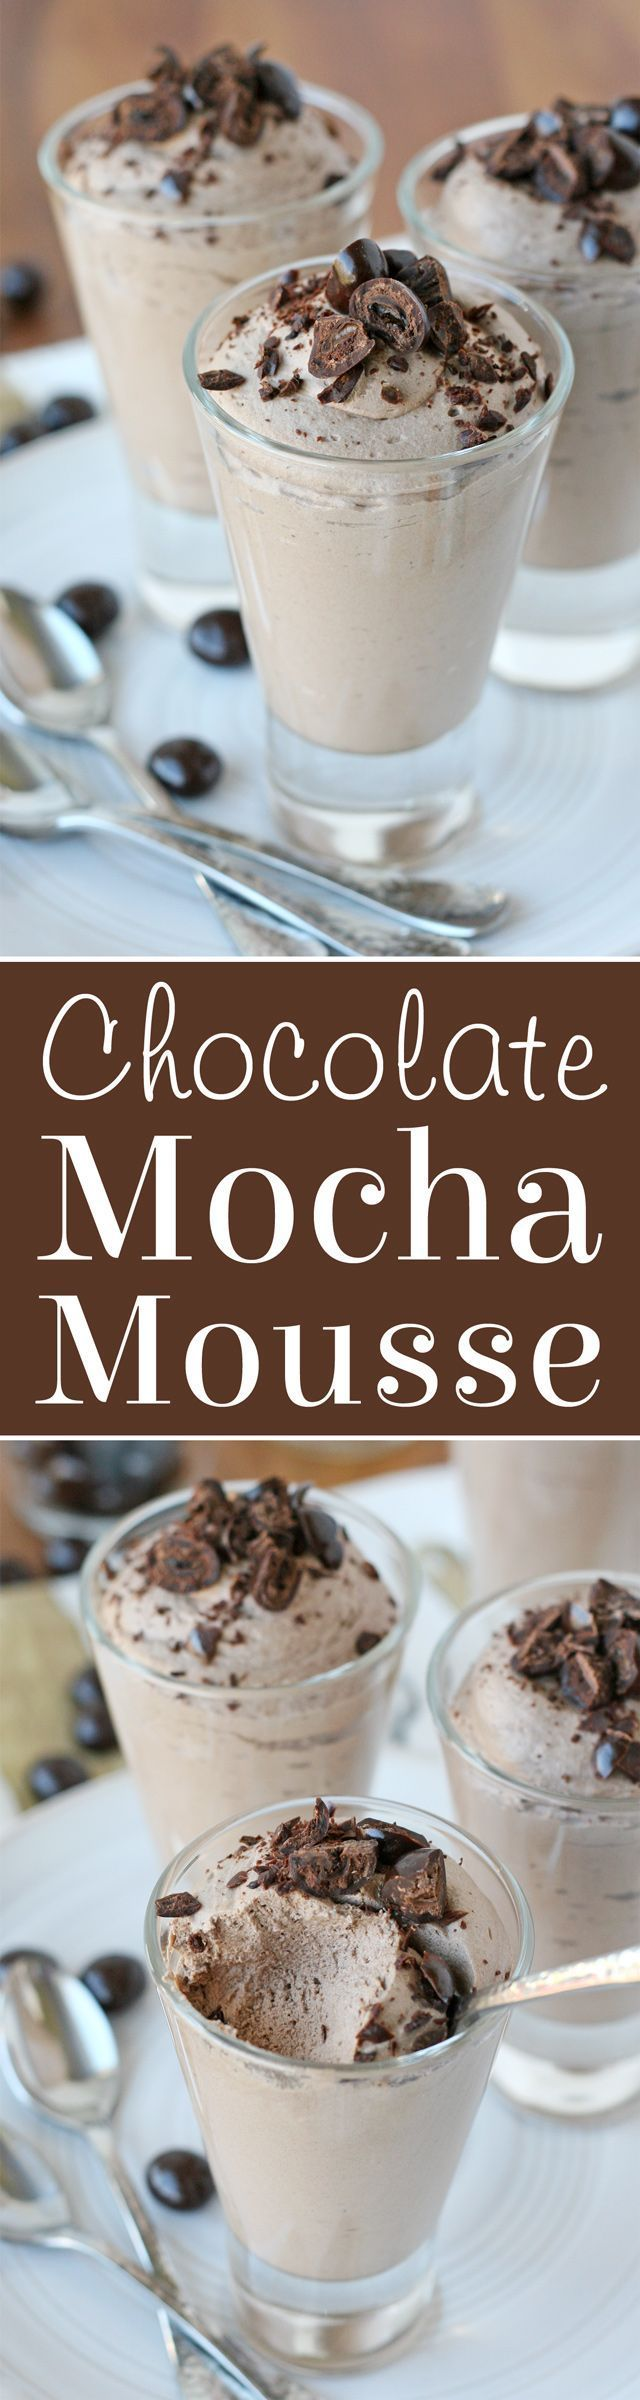 Chocolate Mocha Mousse